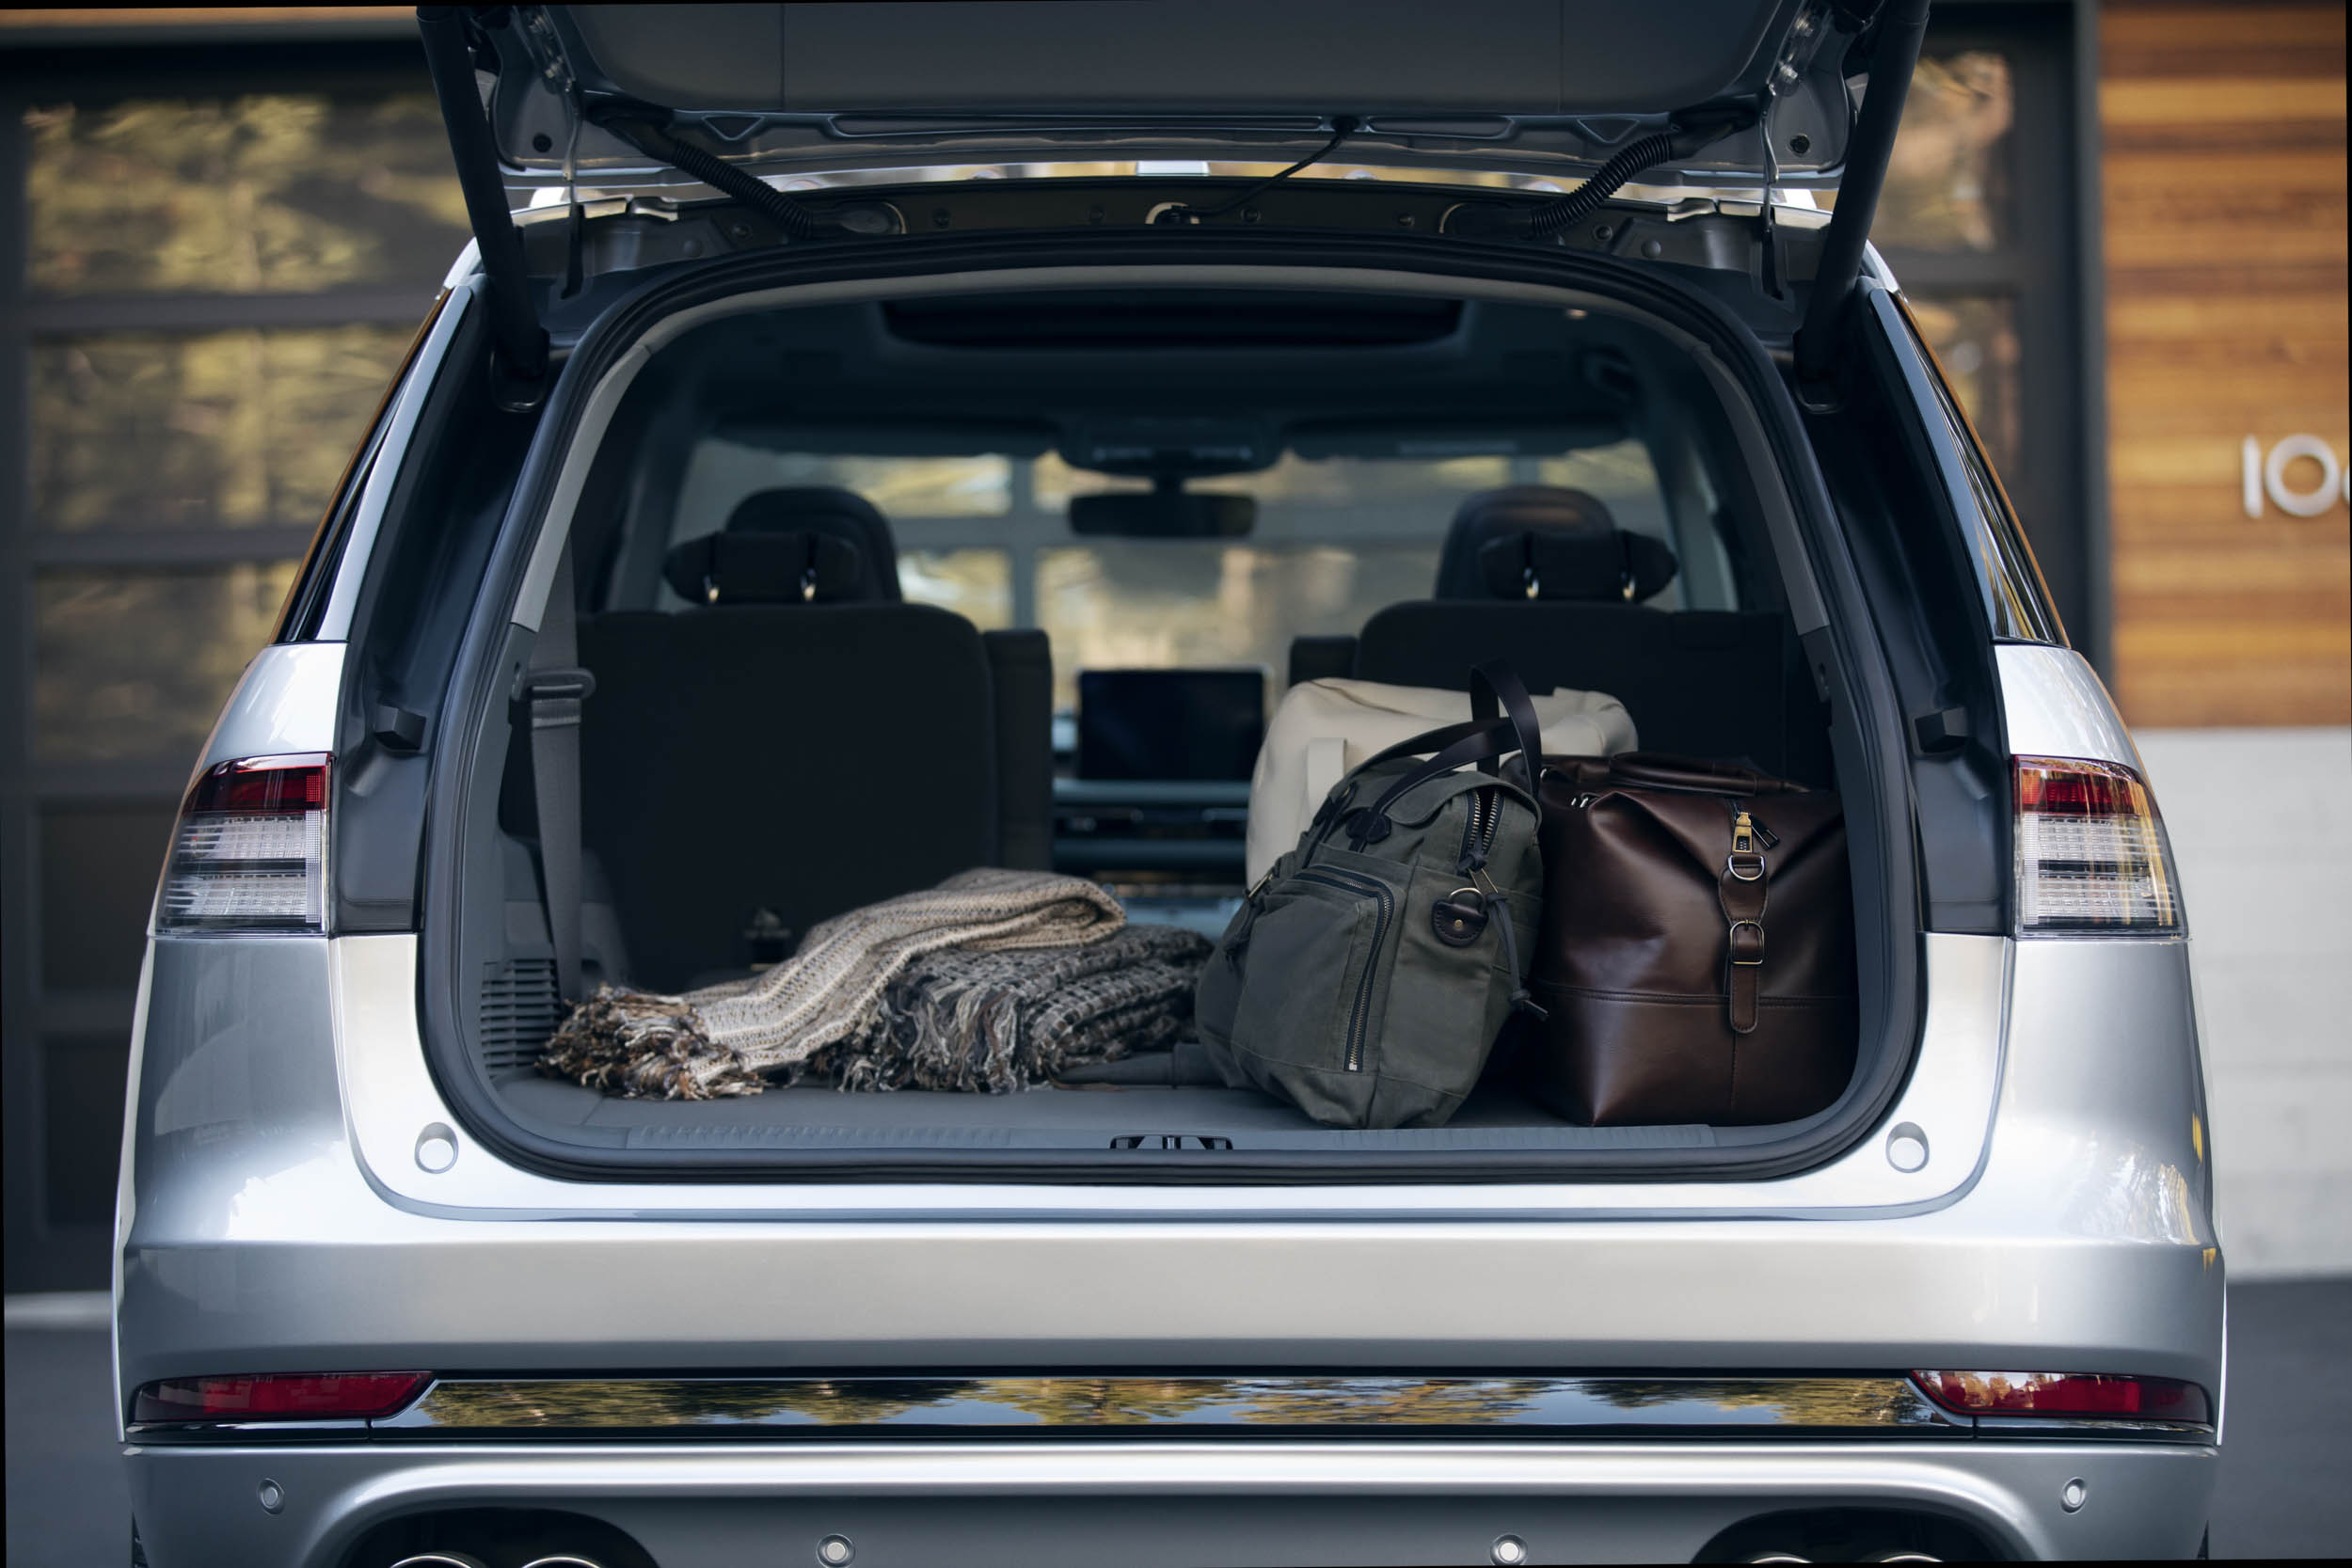 2020 Lincoln Aviator luggage in trunk